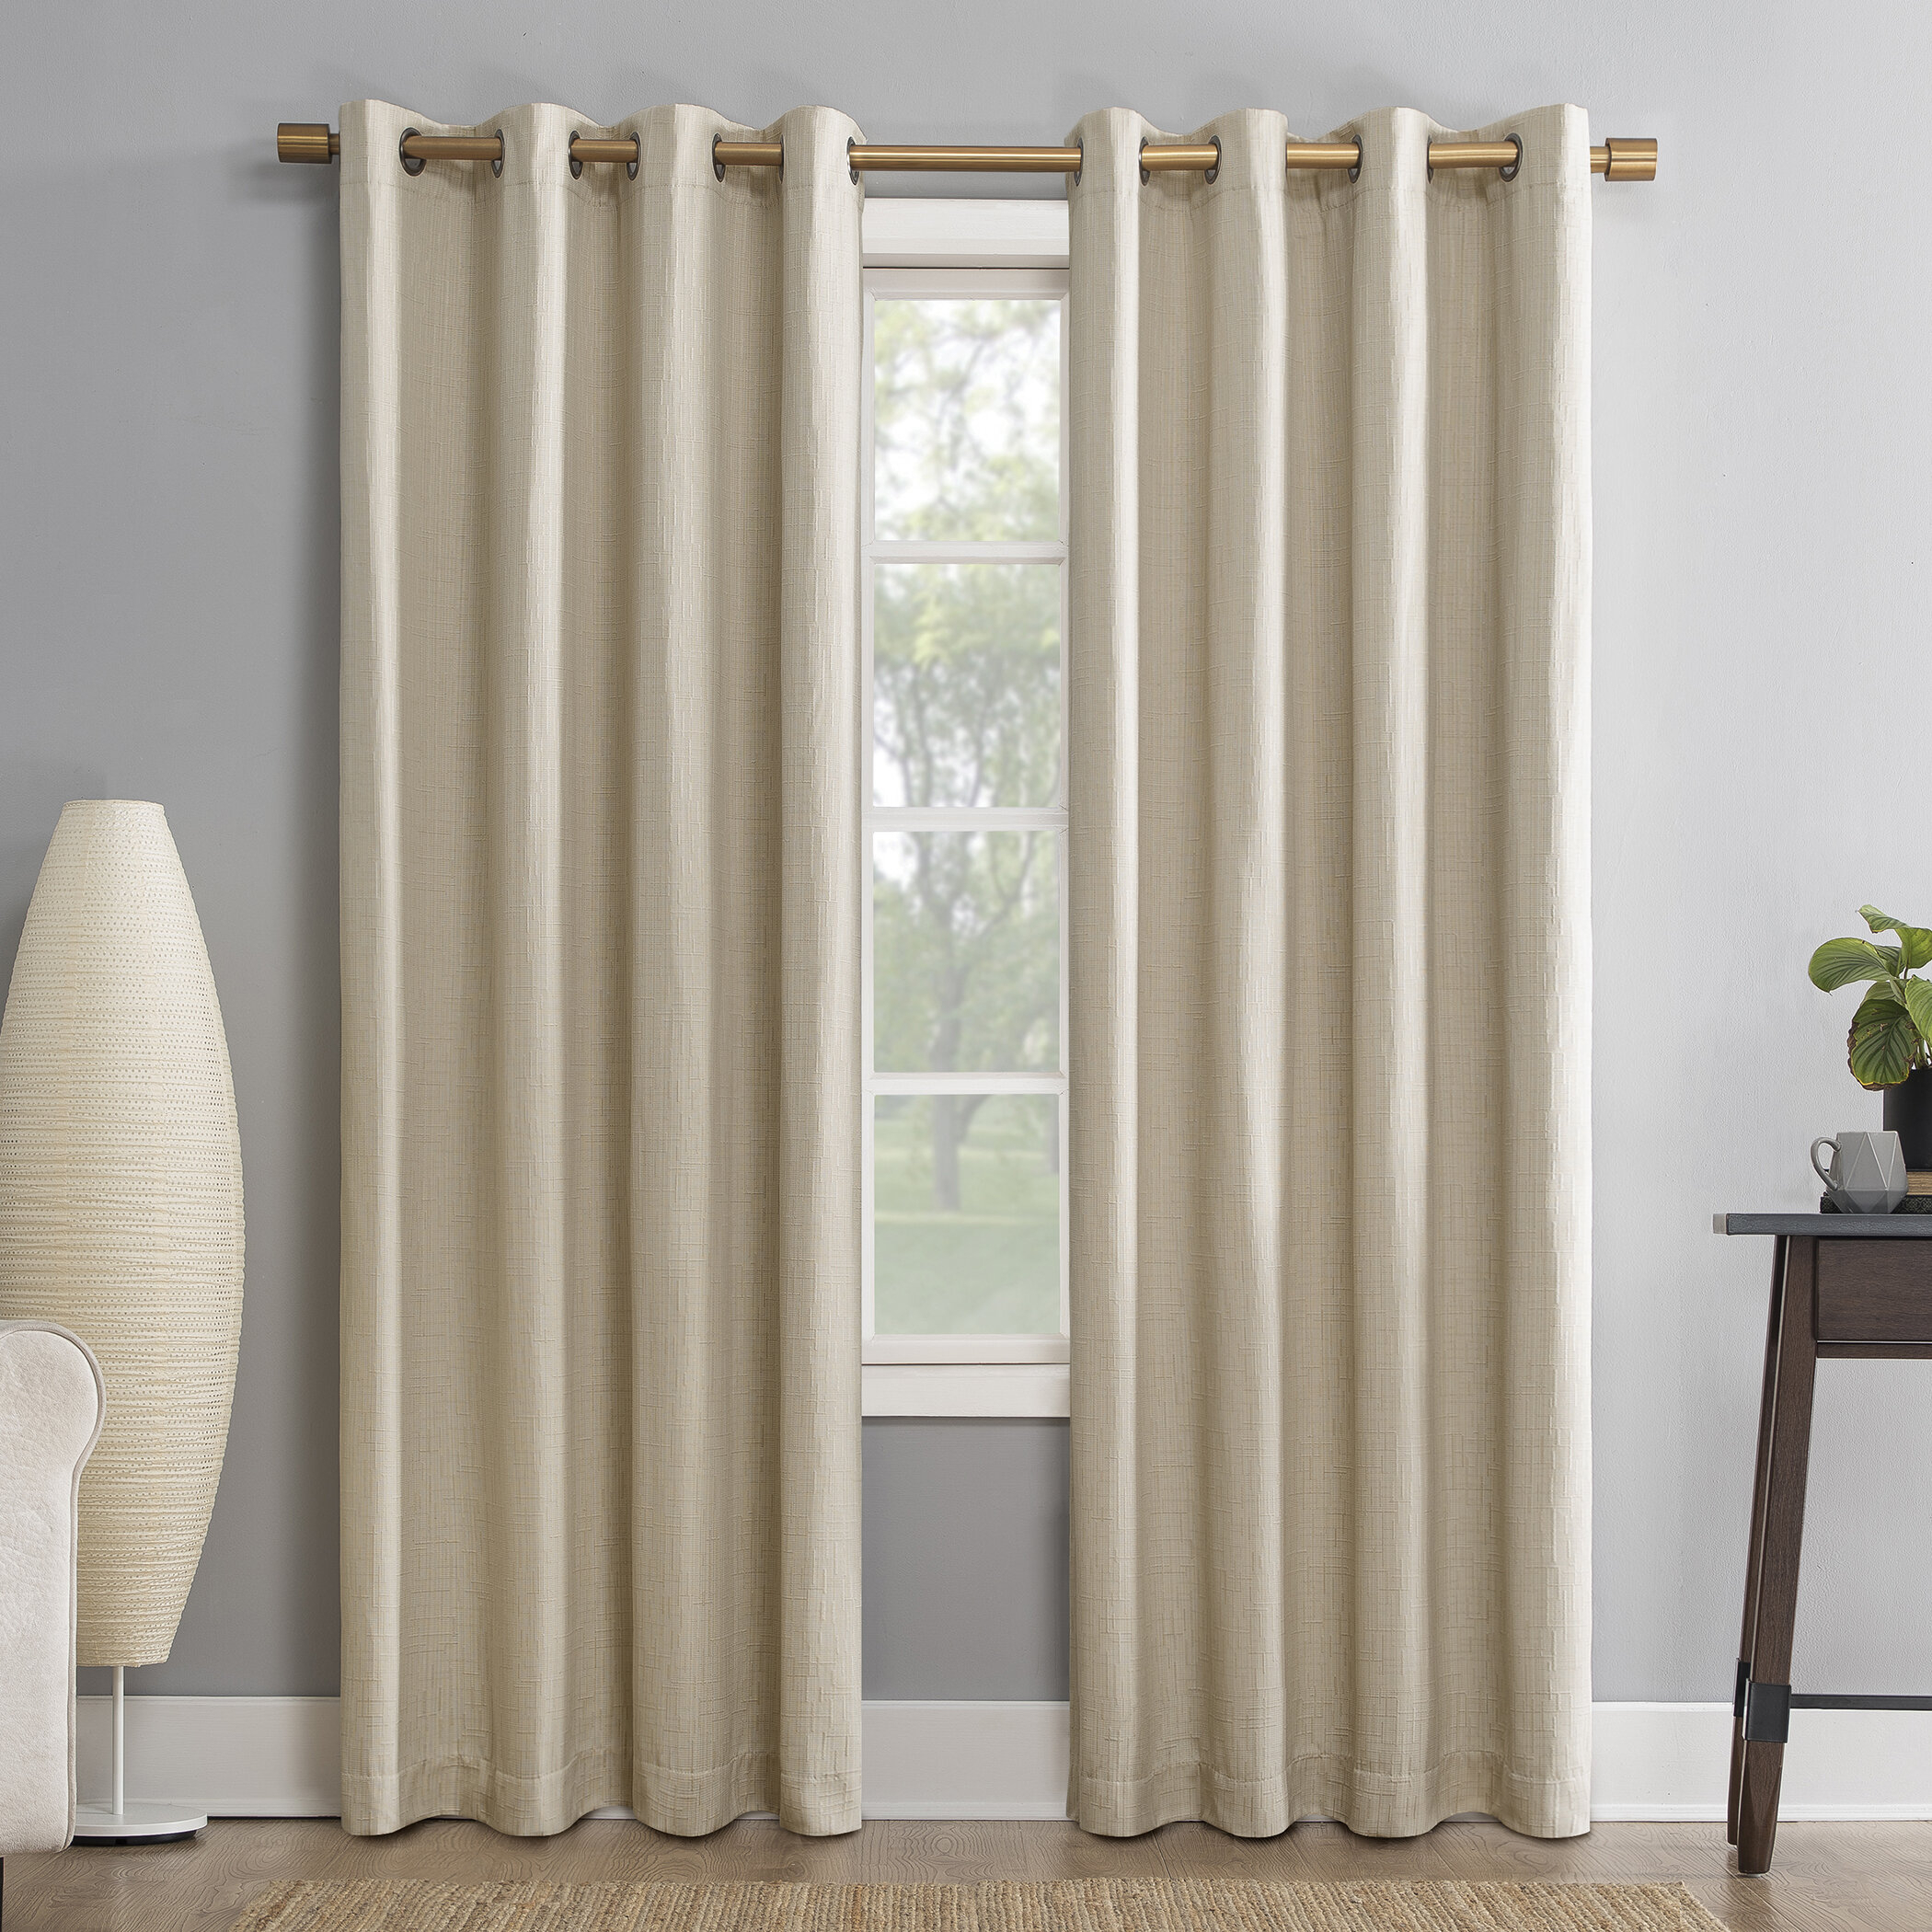 Sun Zero Gavlin Geometric Max Blackout Thermal Grommet For Evelina Faux Dupioni Silk Extreme Blackout Back Tab Curtain Panels (View 11 of 20)